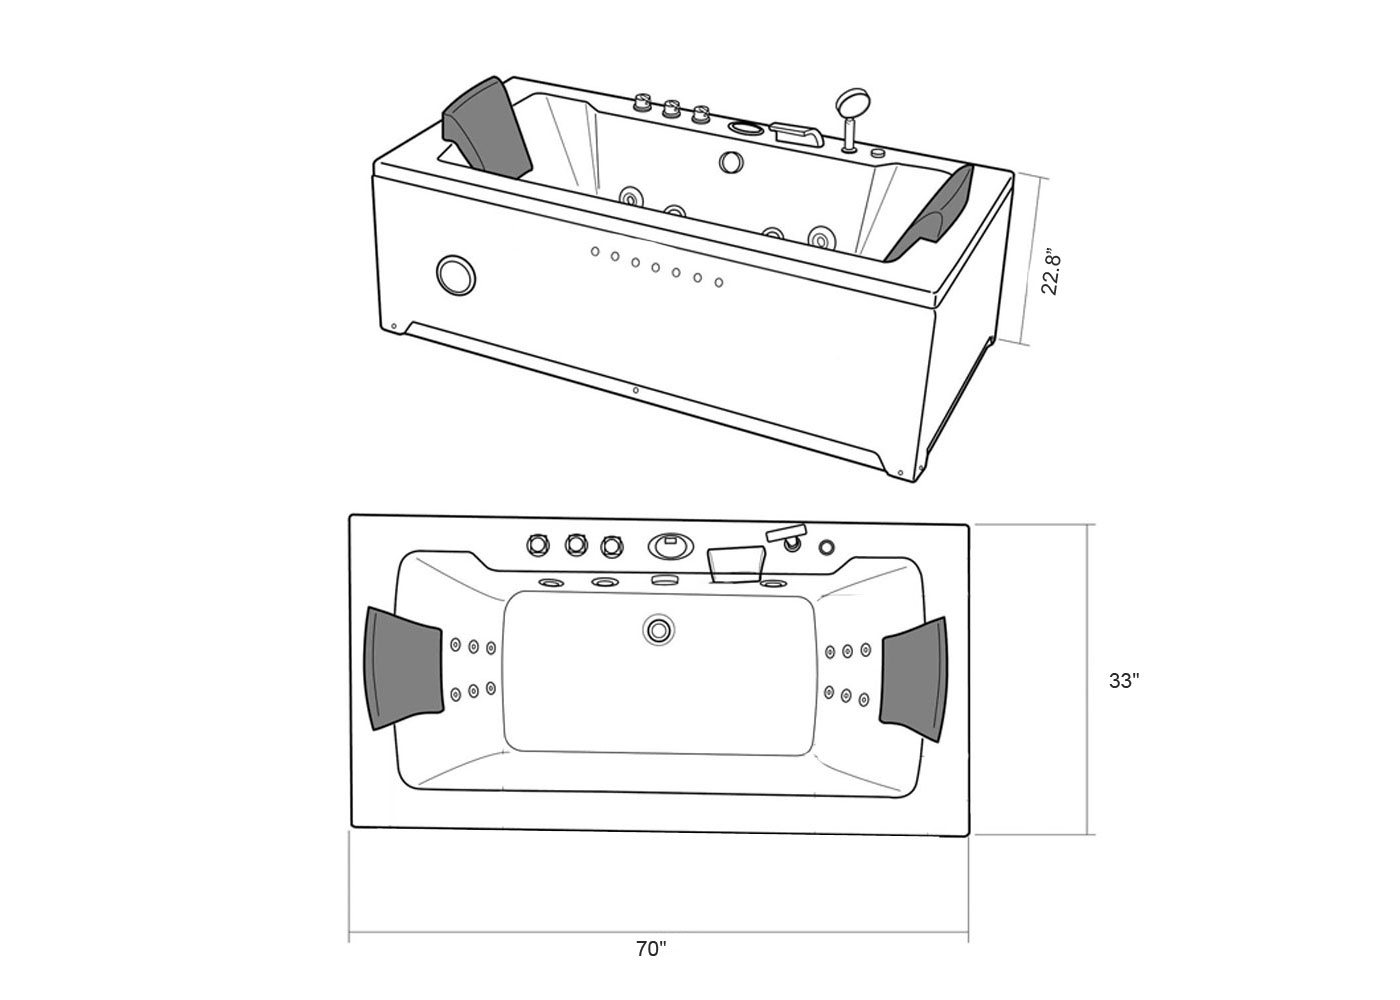 whirlpool bathtub black hot tub double pump hydrotherapy 2 two persons marilyn 762179102571